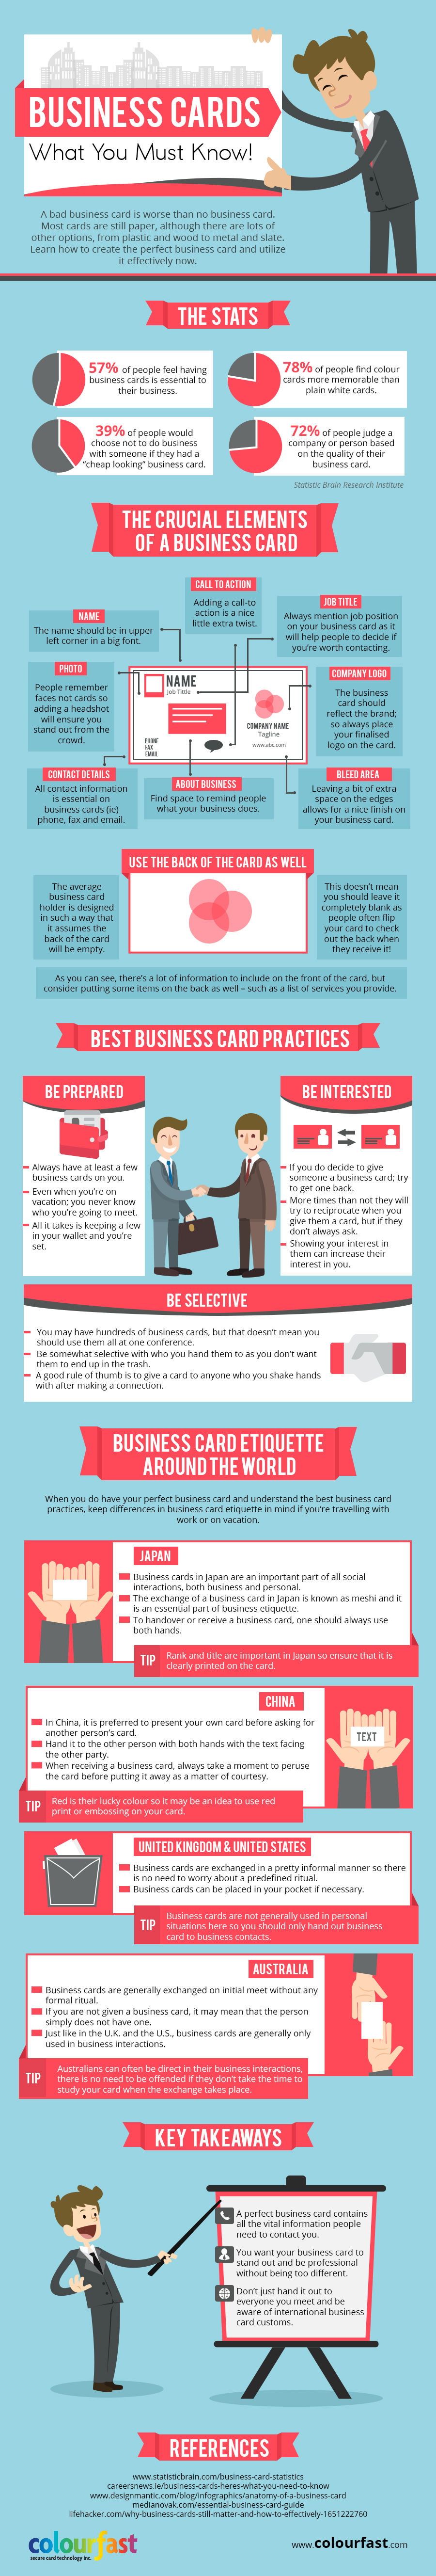 Business Cards What You Need To Know Infographic